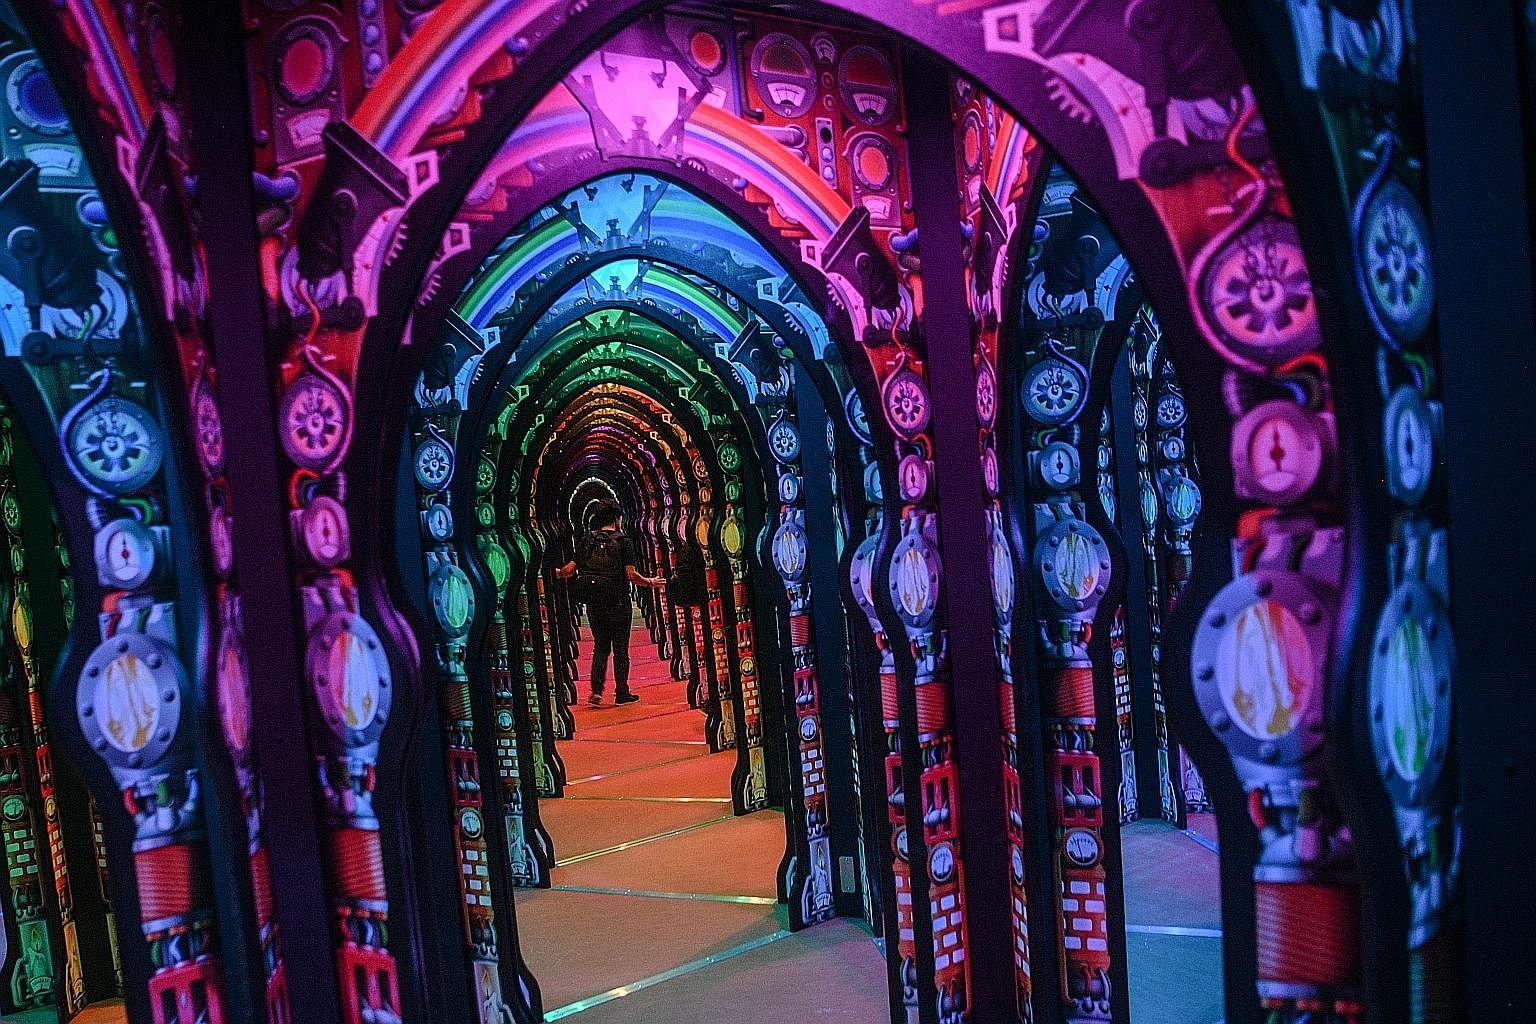 Professor Crackitt's Light Fantastic maze exhibition (above) spreads over 270 sq m of space filled with mirrors and kaleidoscopic displays (left).